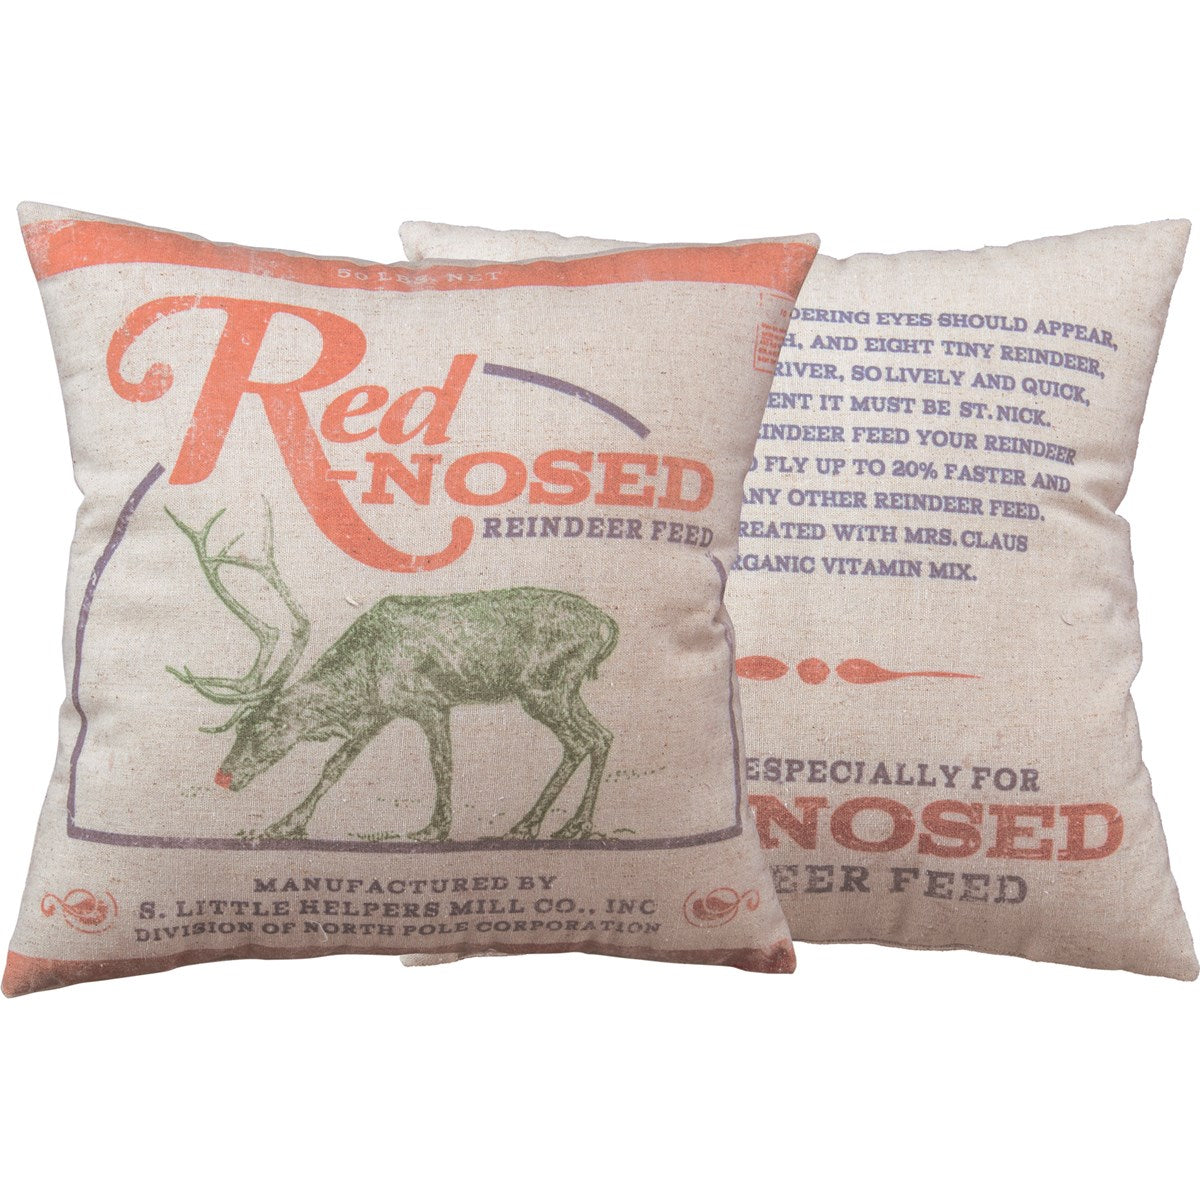 Red-Nosed Reindeer Pillow